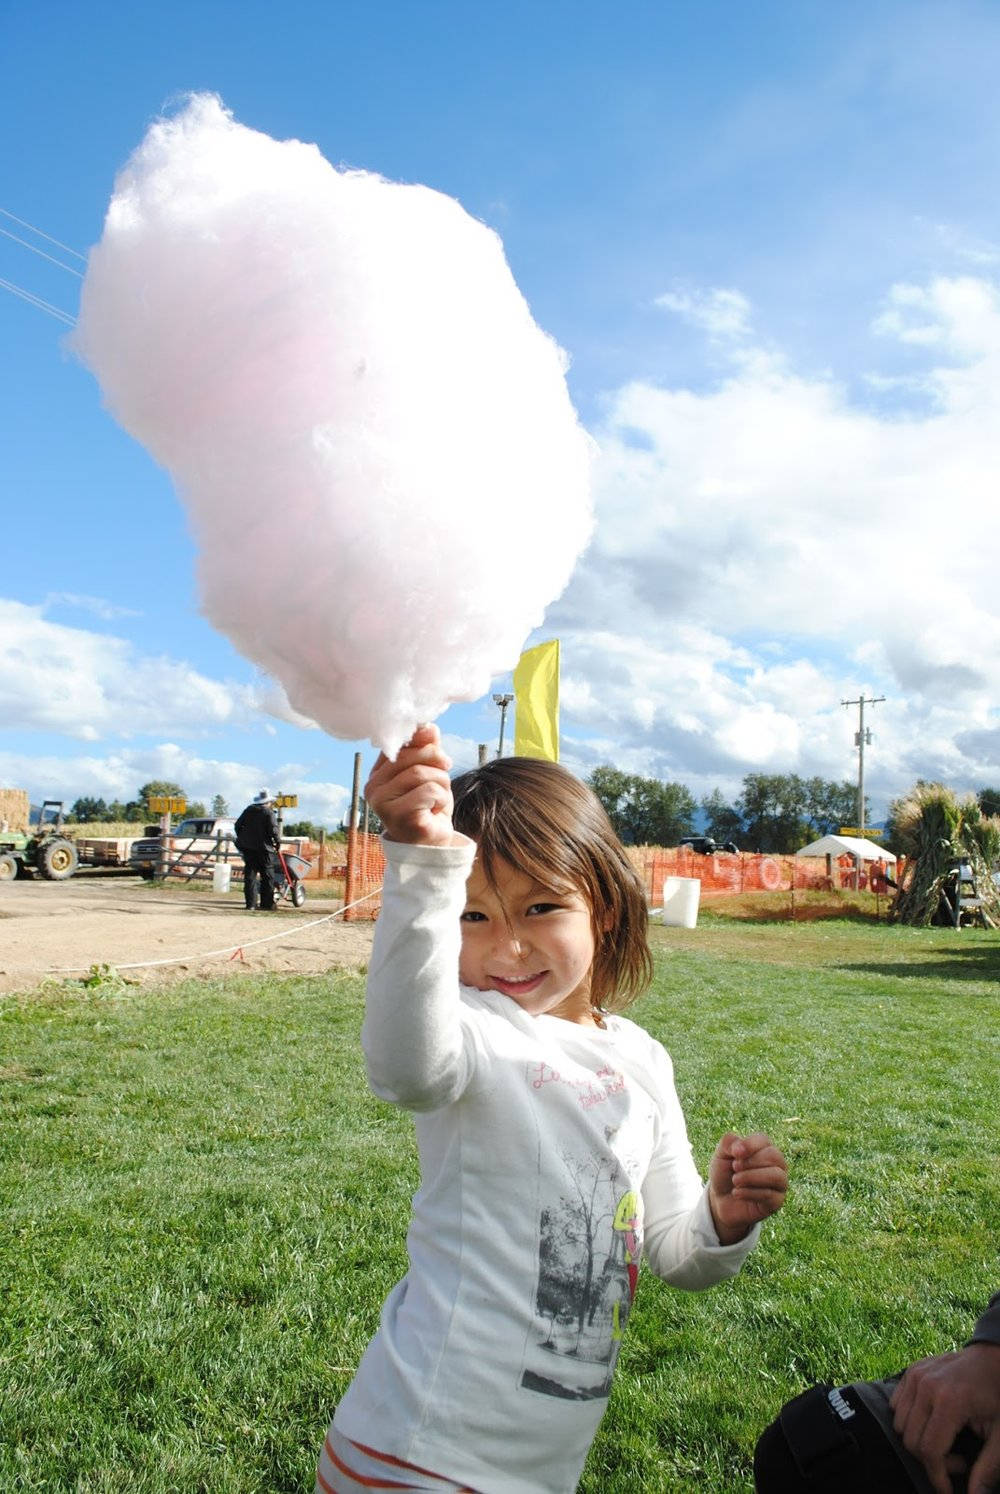 Fort Vannoy Farms Harvest Festival - Grants Pass, Oregon - Josephine County - Rogue Valley - Southern Oregon - Fall - Autumn - Pumpkin Patch - Corn Maze - Hayrides (148).JPG